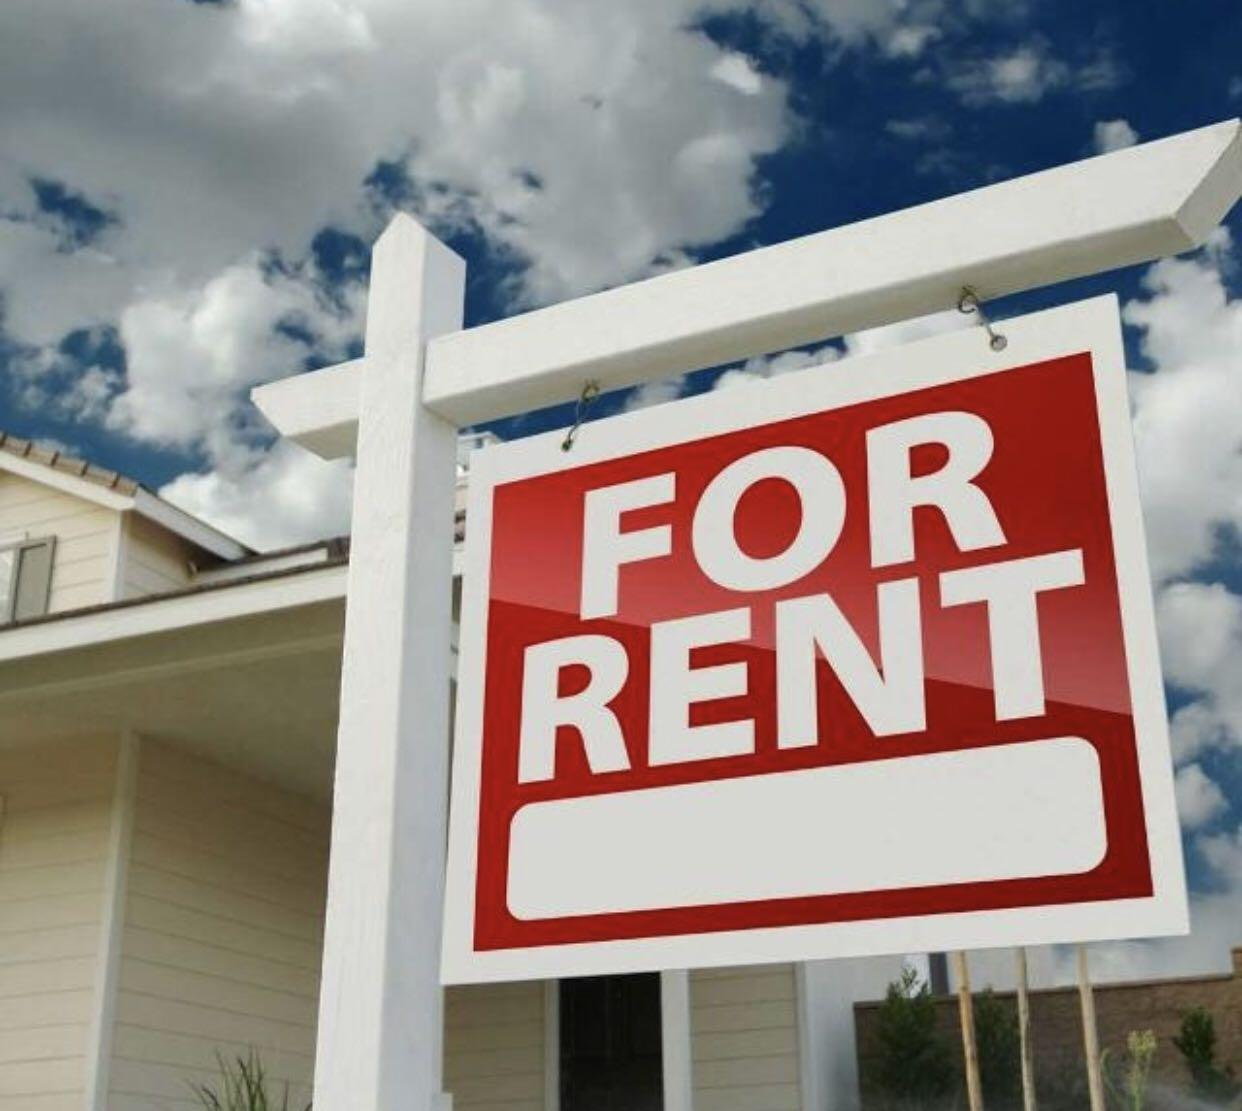 Looking Apartment For Rent: Looking For: ISO Apartment For Rent In Keswick, Ontario